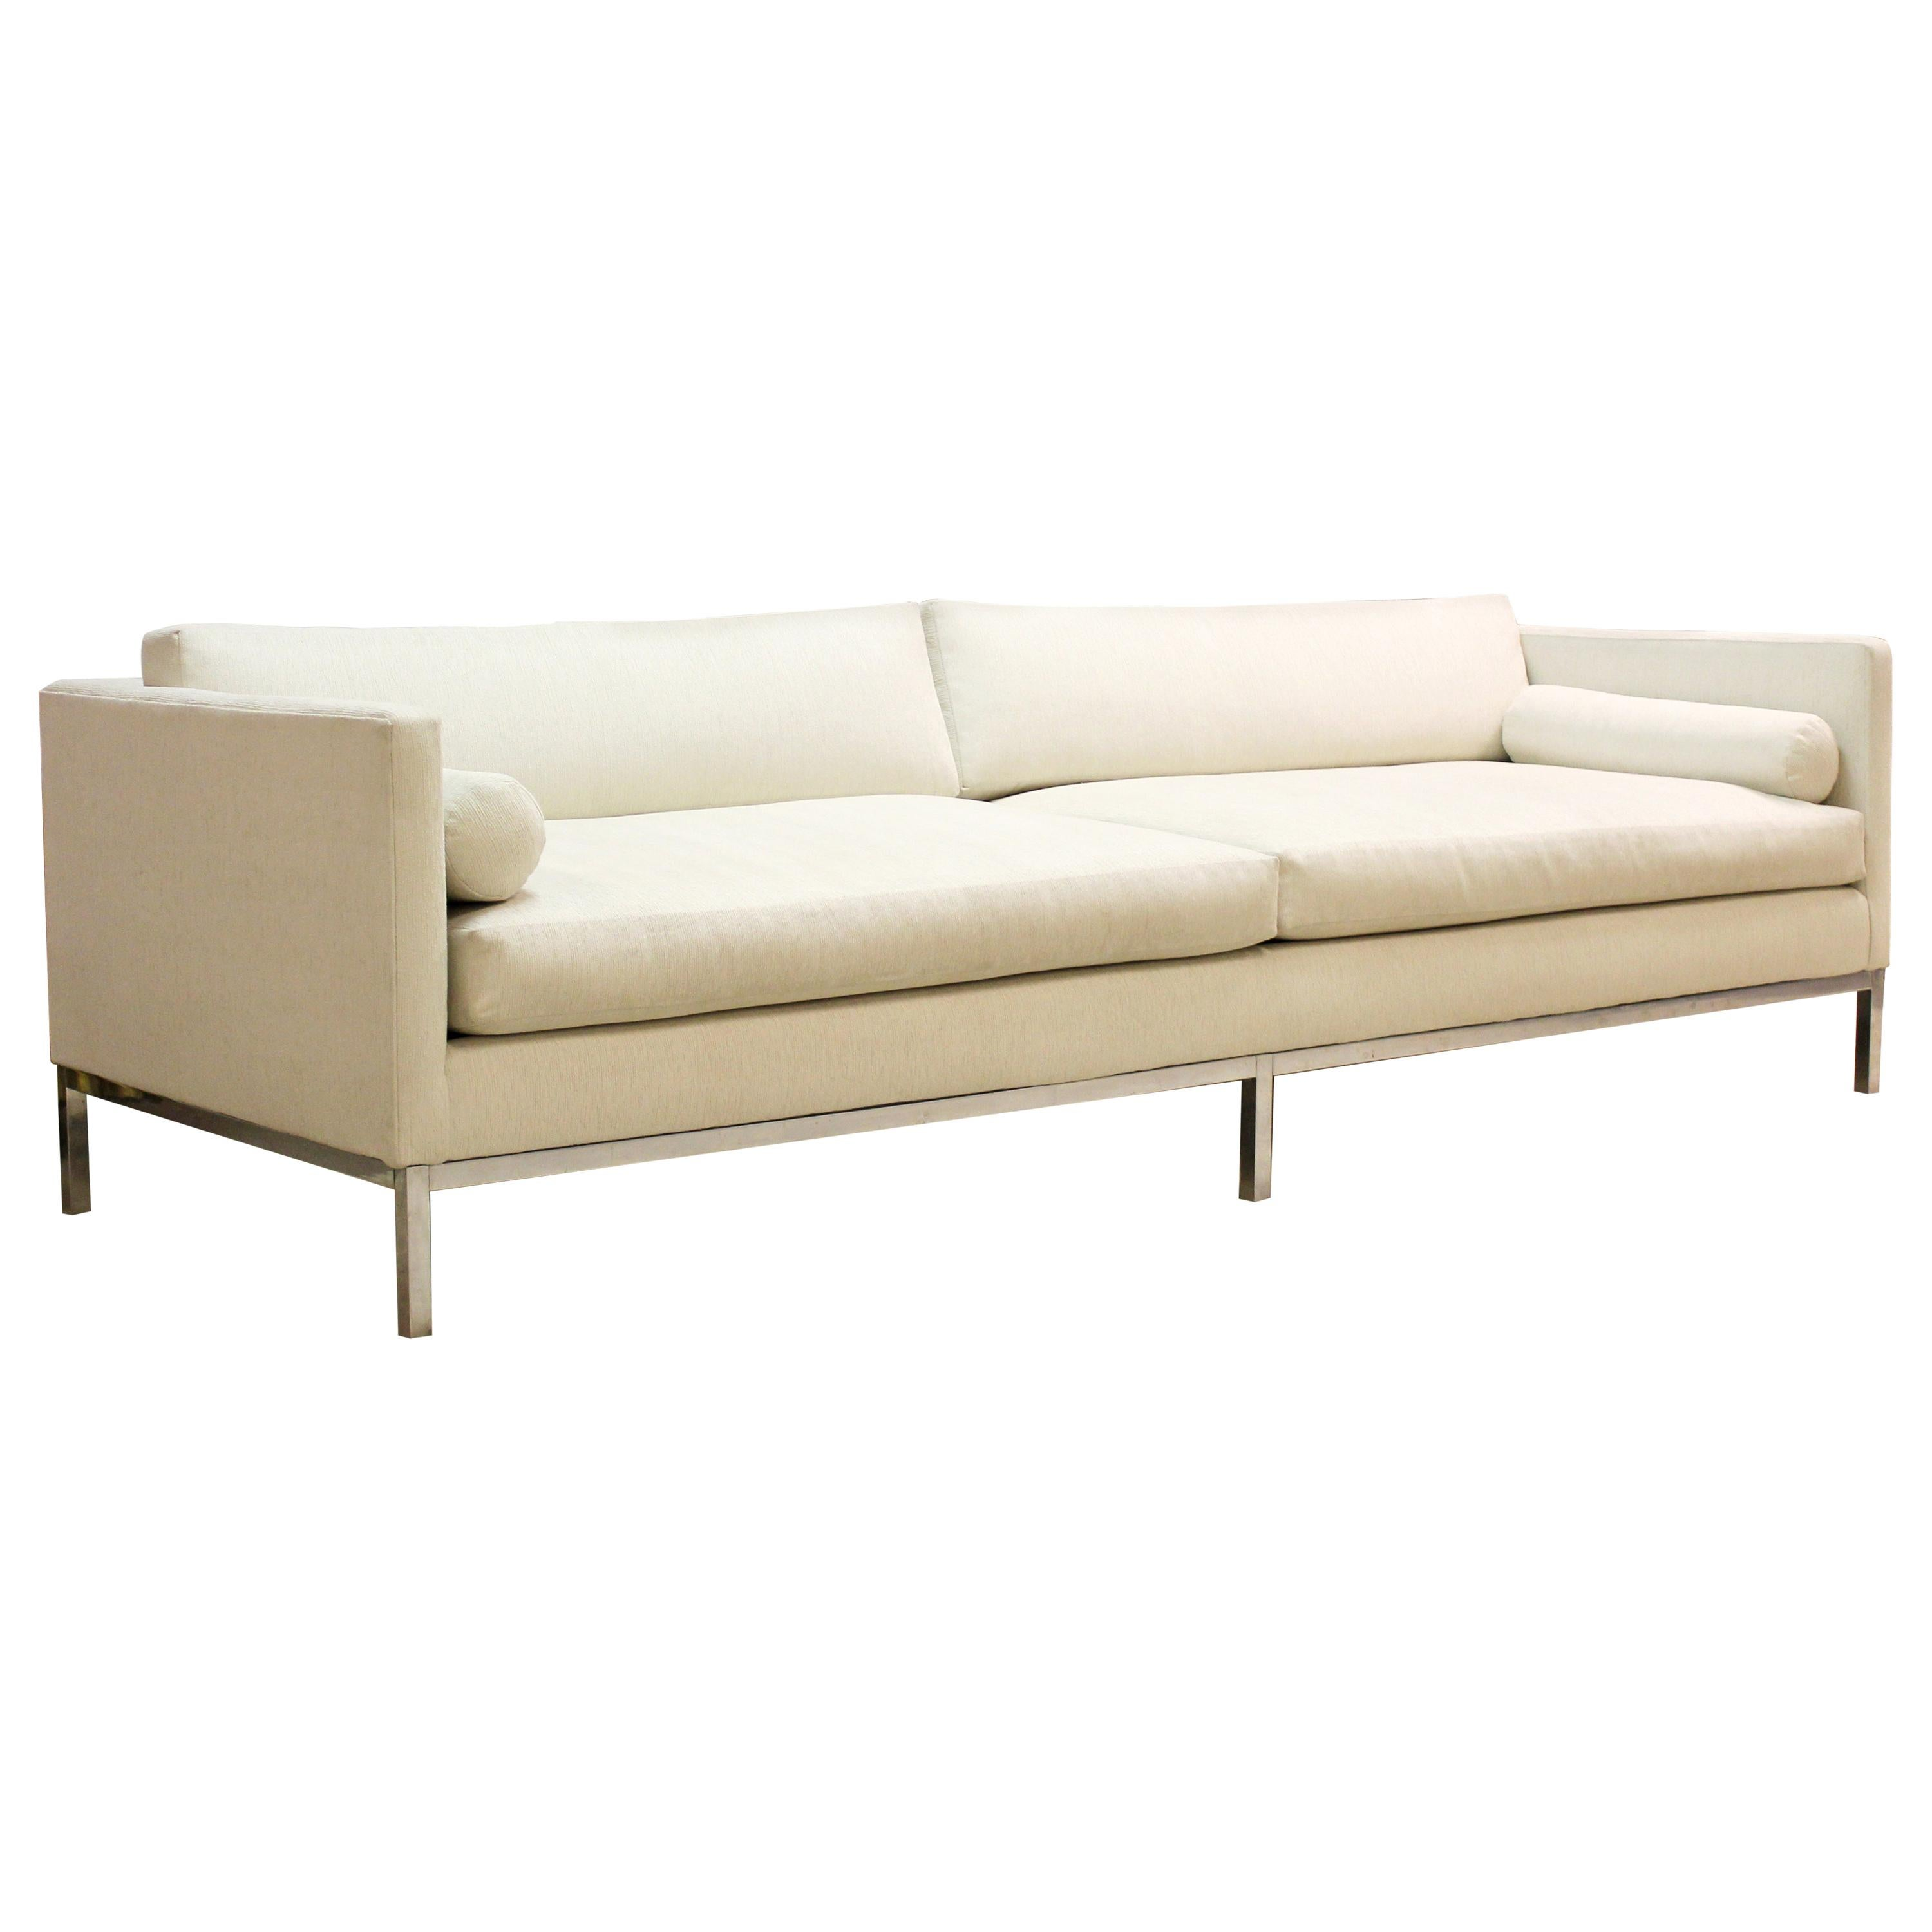 1970s sofas 971 for